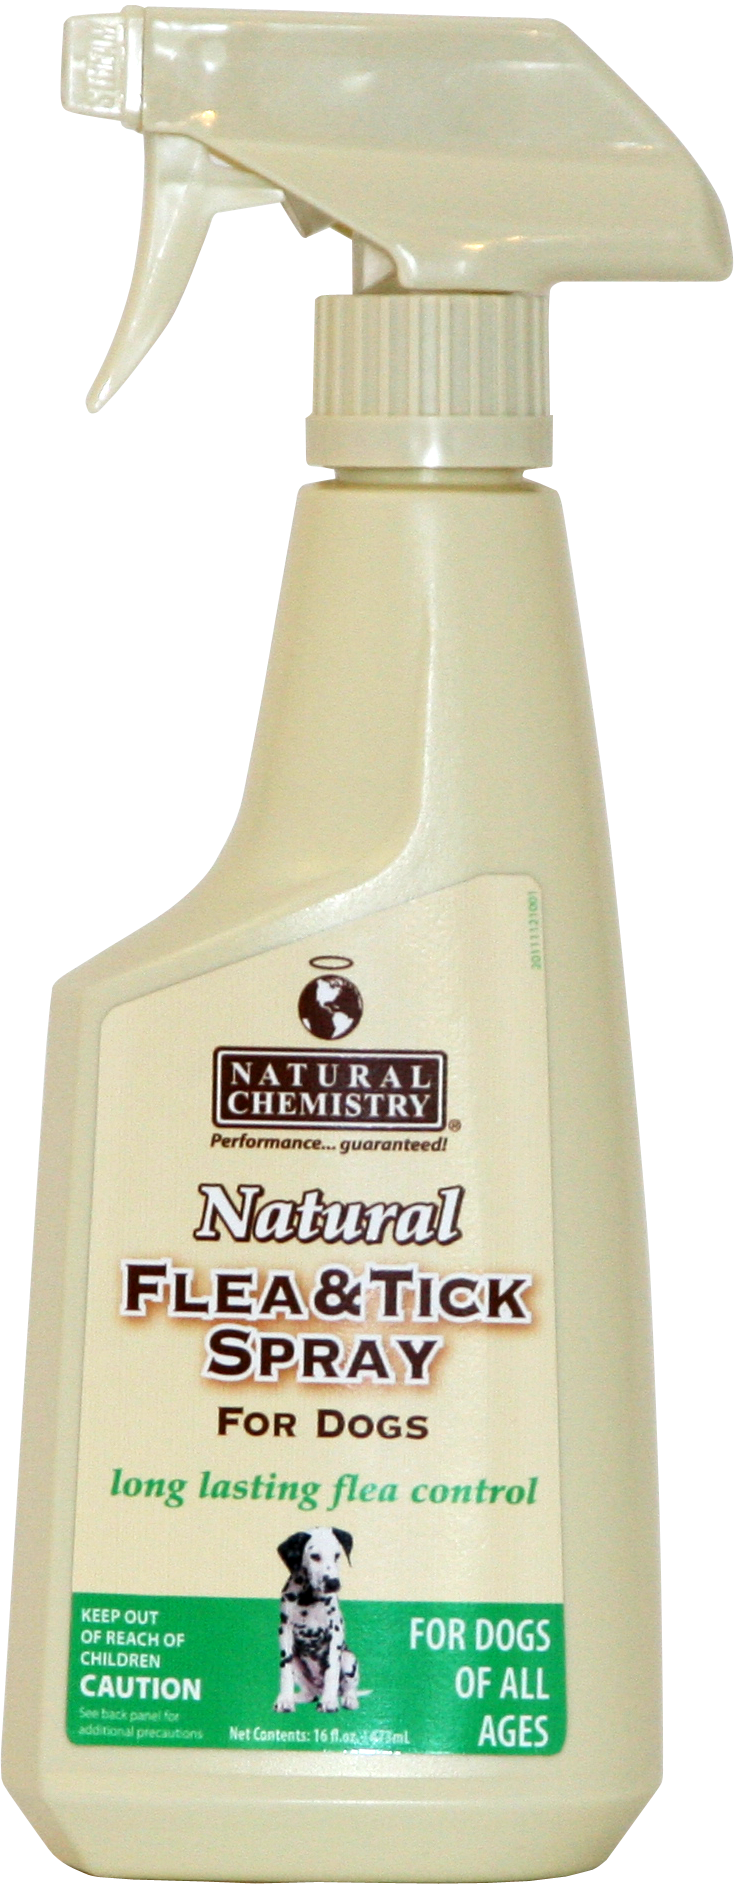 11210_Natural Flea & Tick Spray 16oz.png